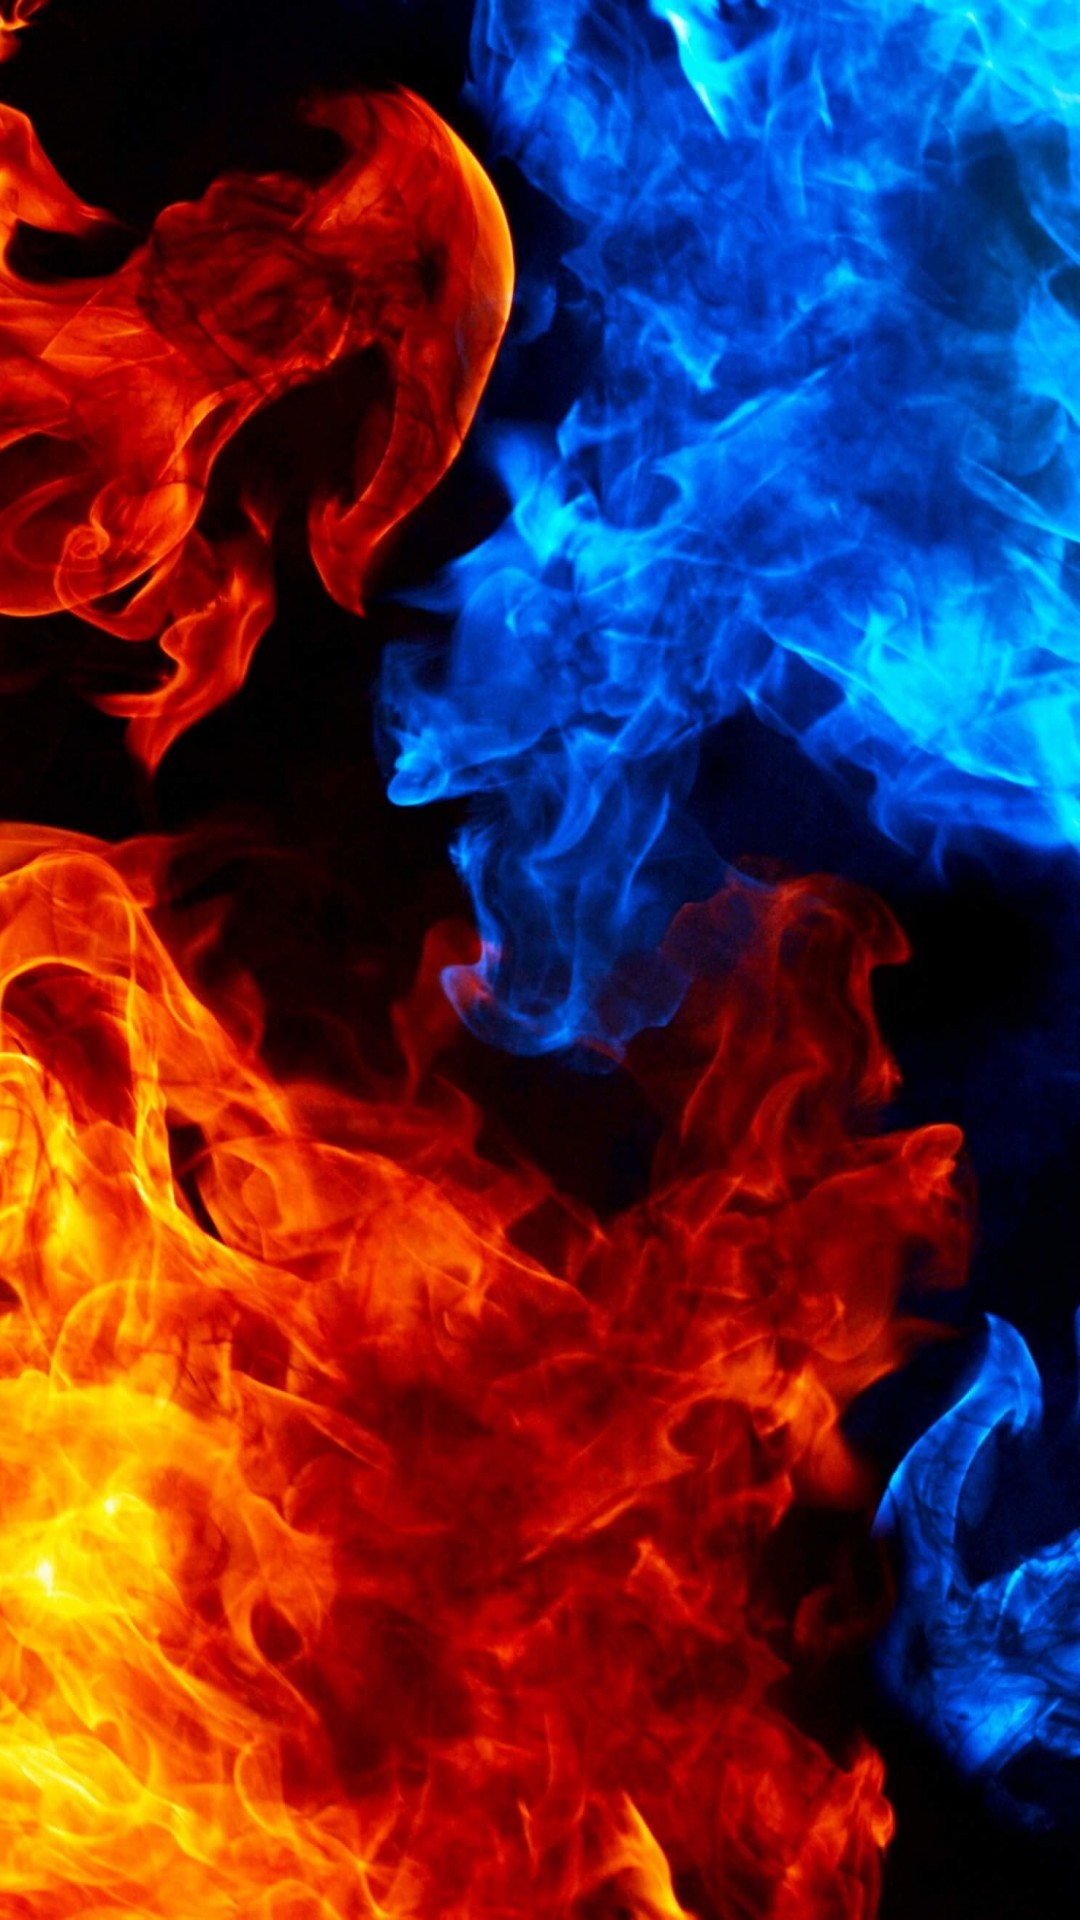 Blue And Red Fire Wallpaper for Motorola Moto X